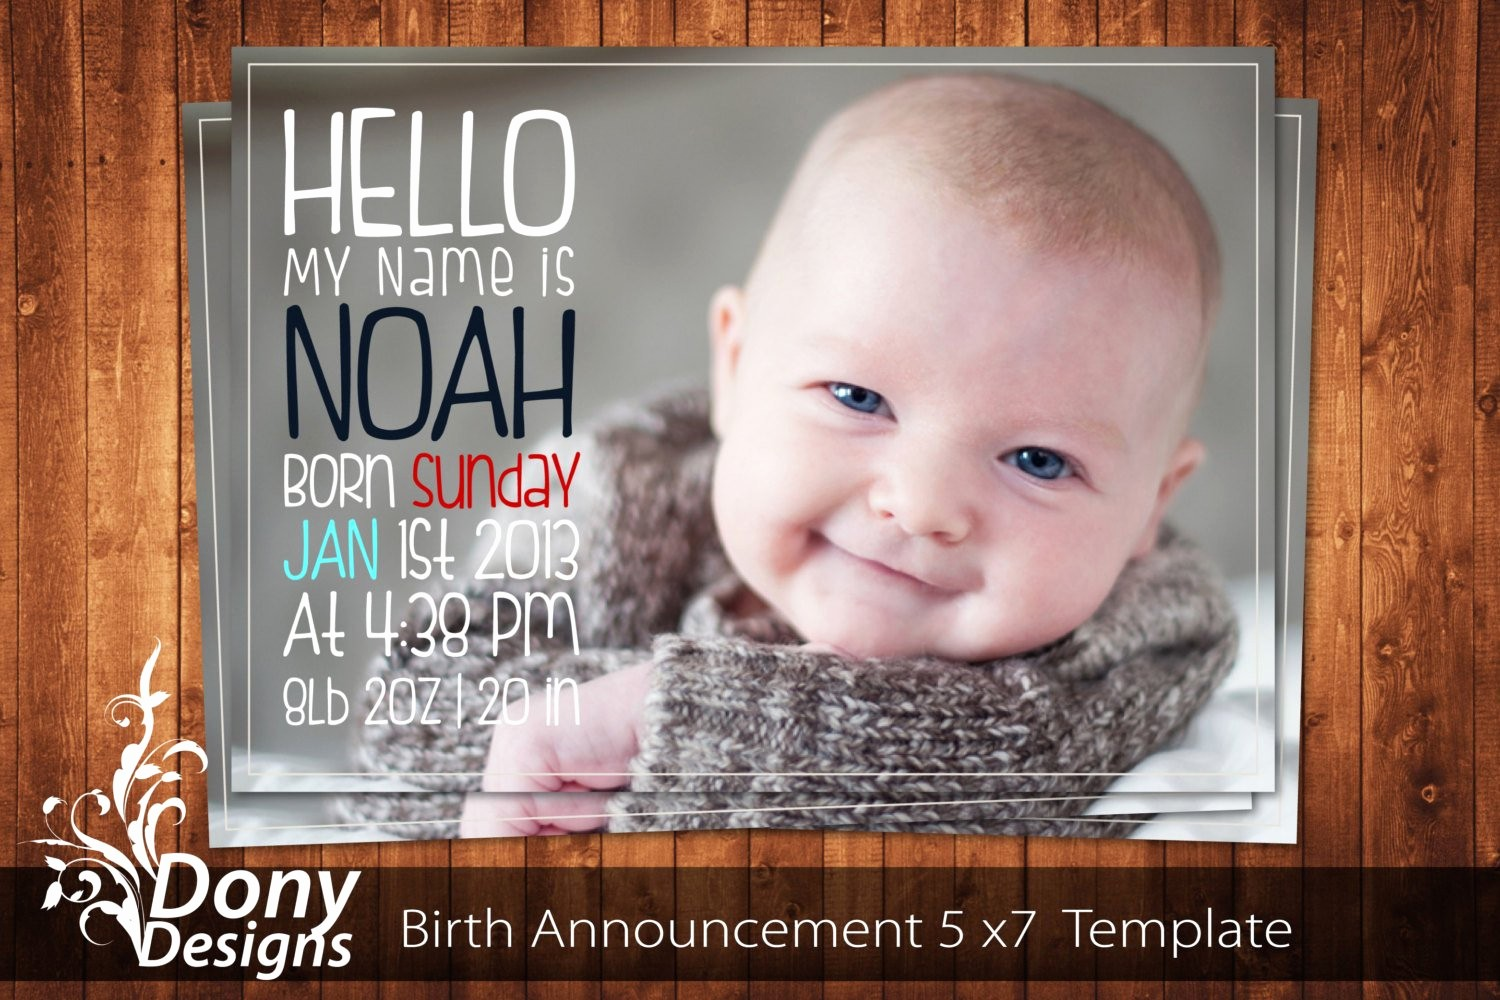 Baby Boy Announcements Free Templates Fresh Buy 1 Get 1 Free Birth Announcement Neutral Baby